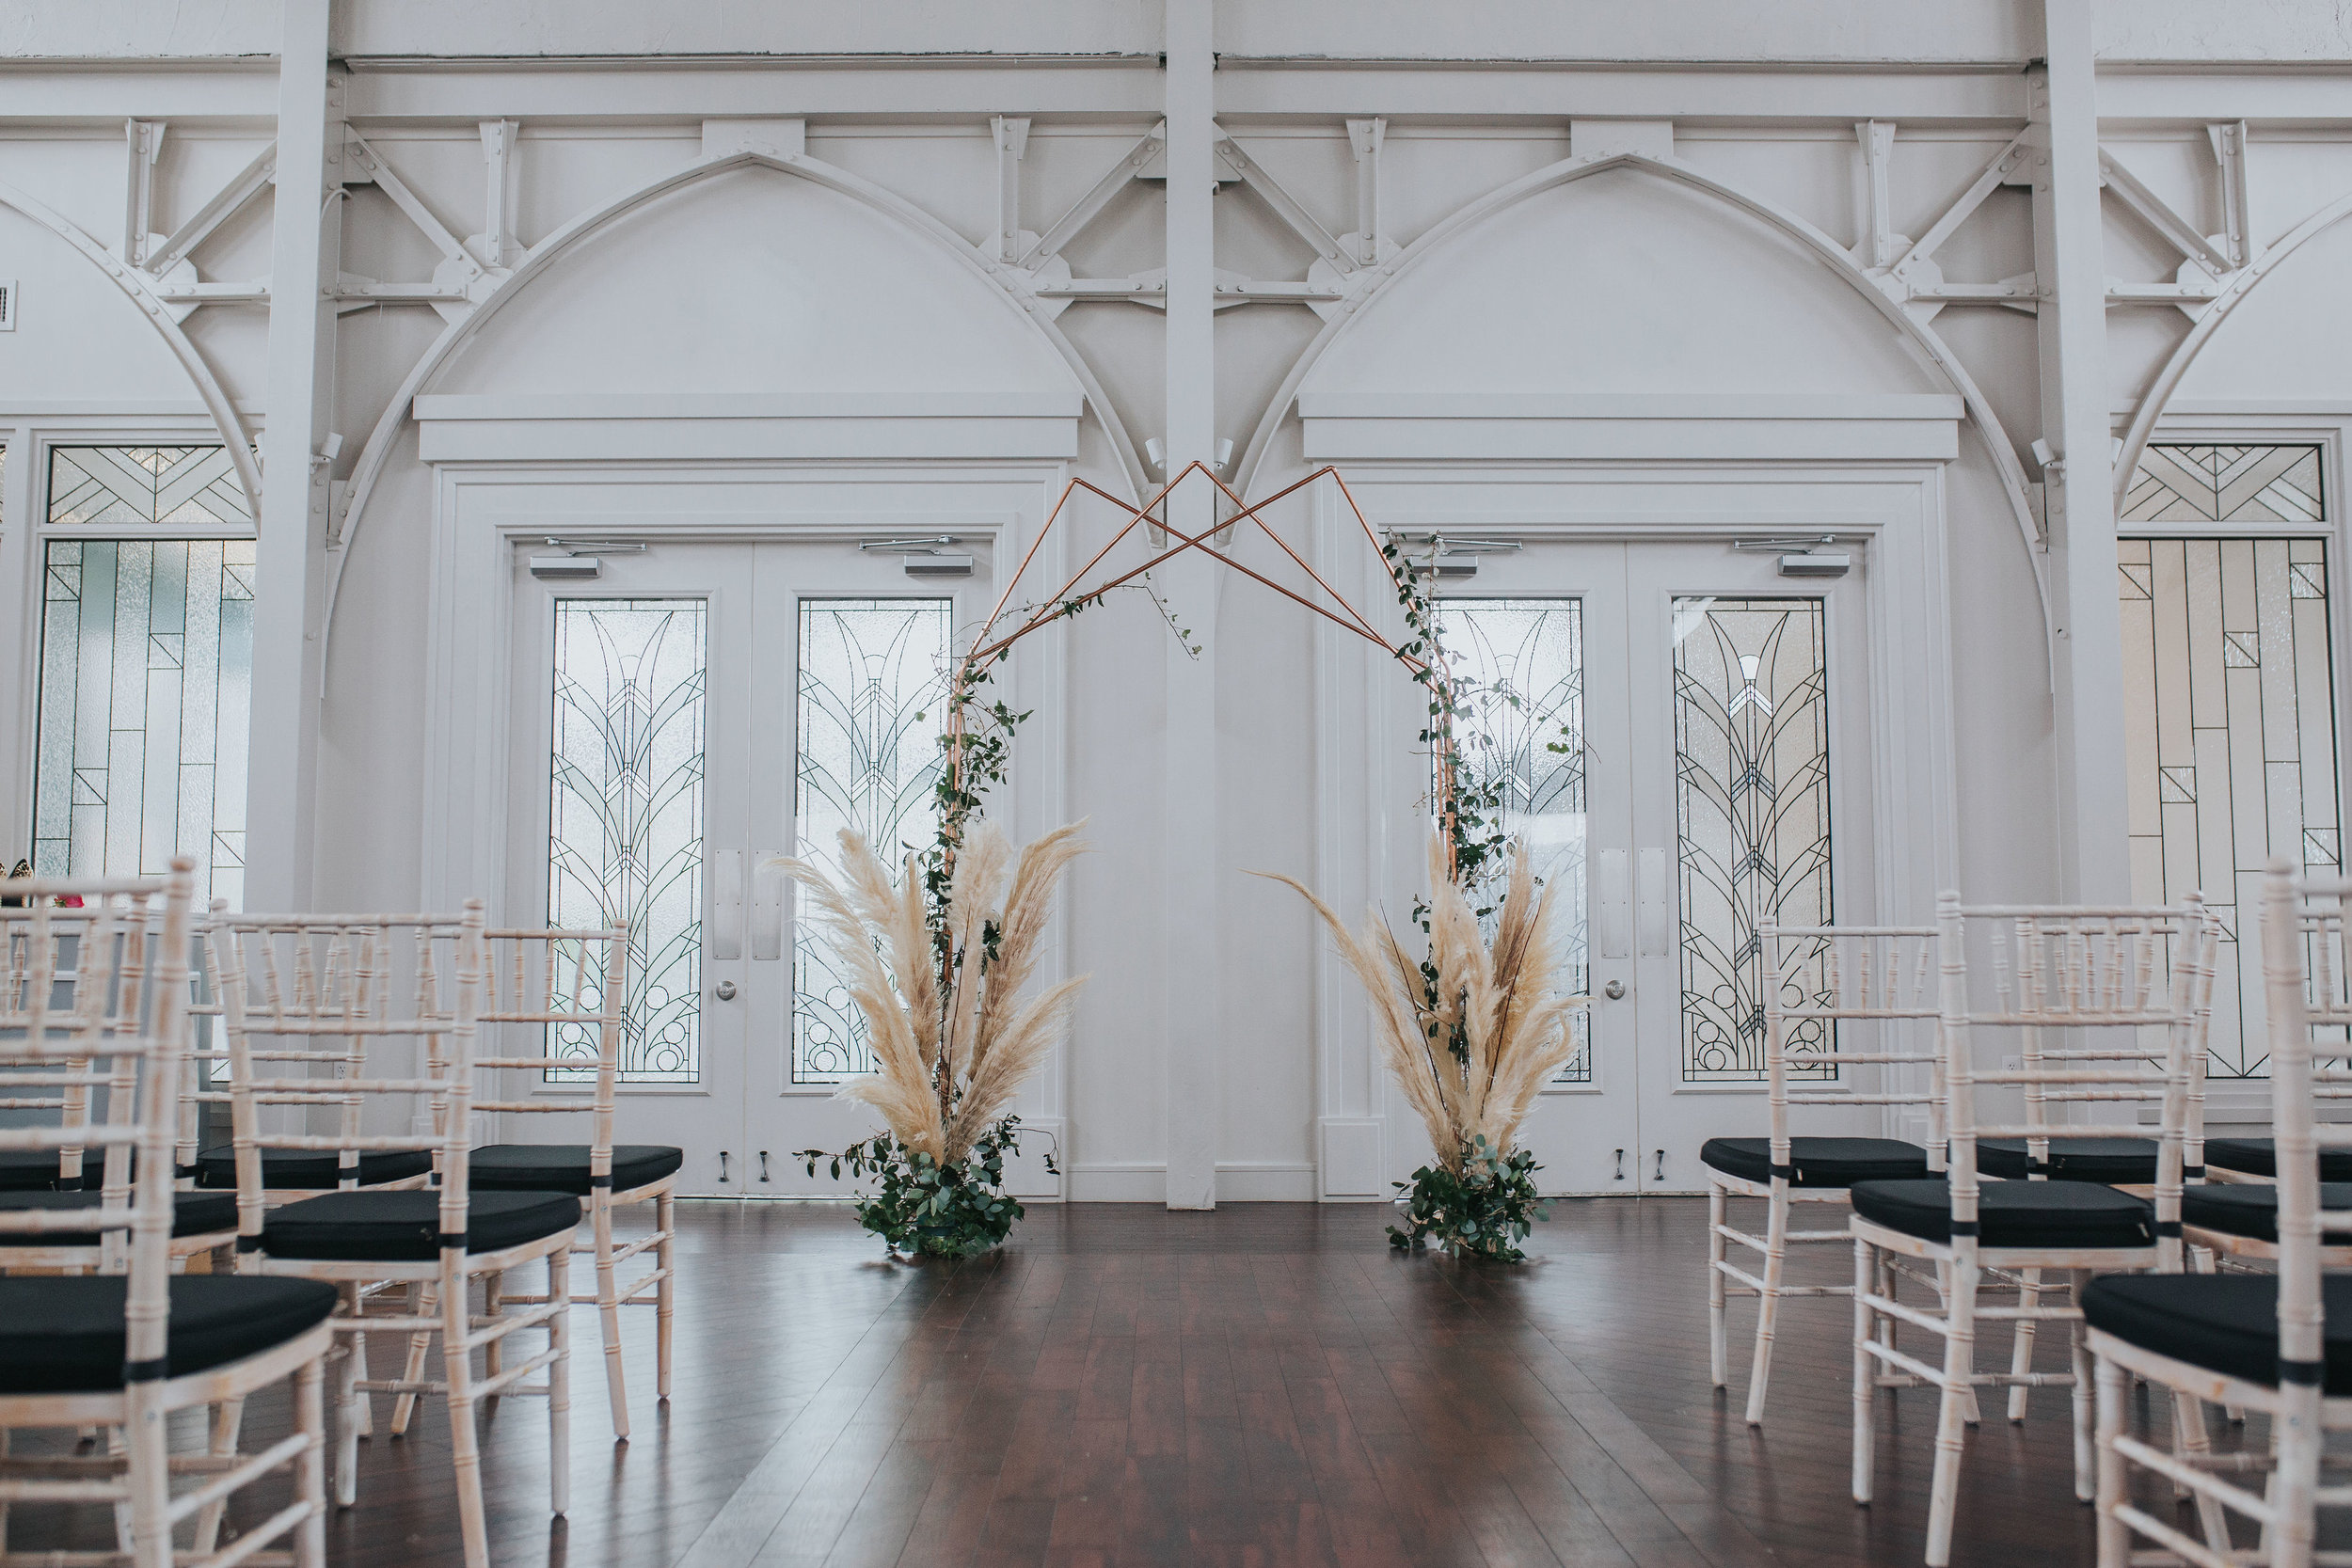 Memphis-Wedding-Planner-Wedding-Day-Manager-Florist-Wedding-Designer-Floral-Curator-Coordinator-Shelby-Renee-Photography-The-Atrium-At-Overton-Square